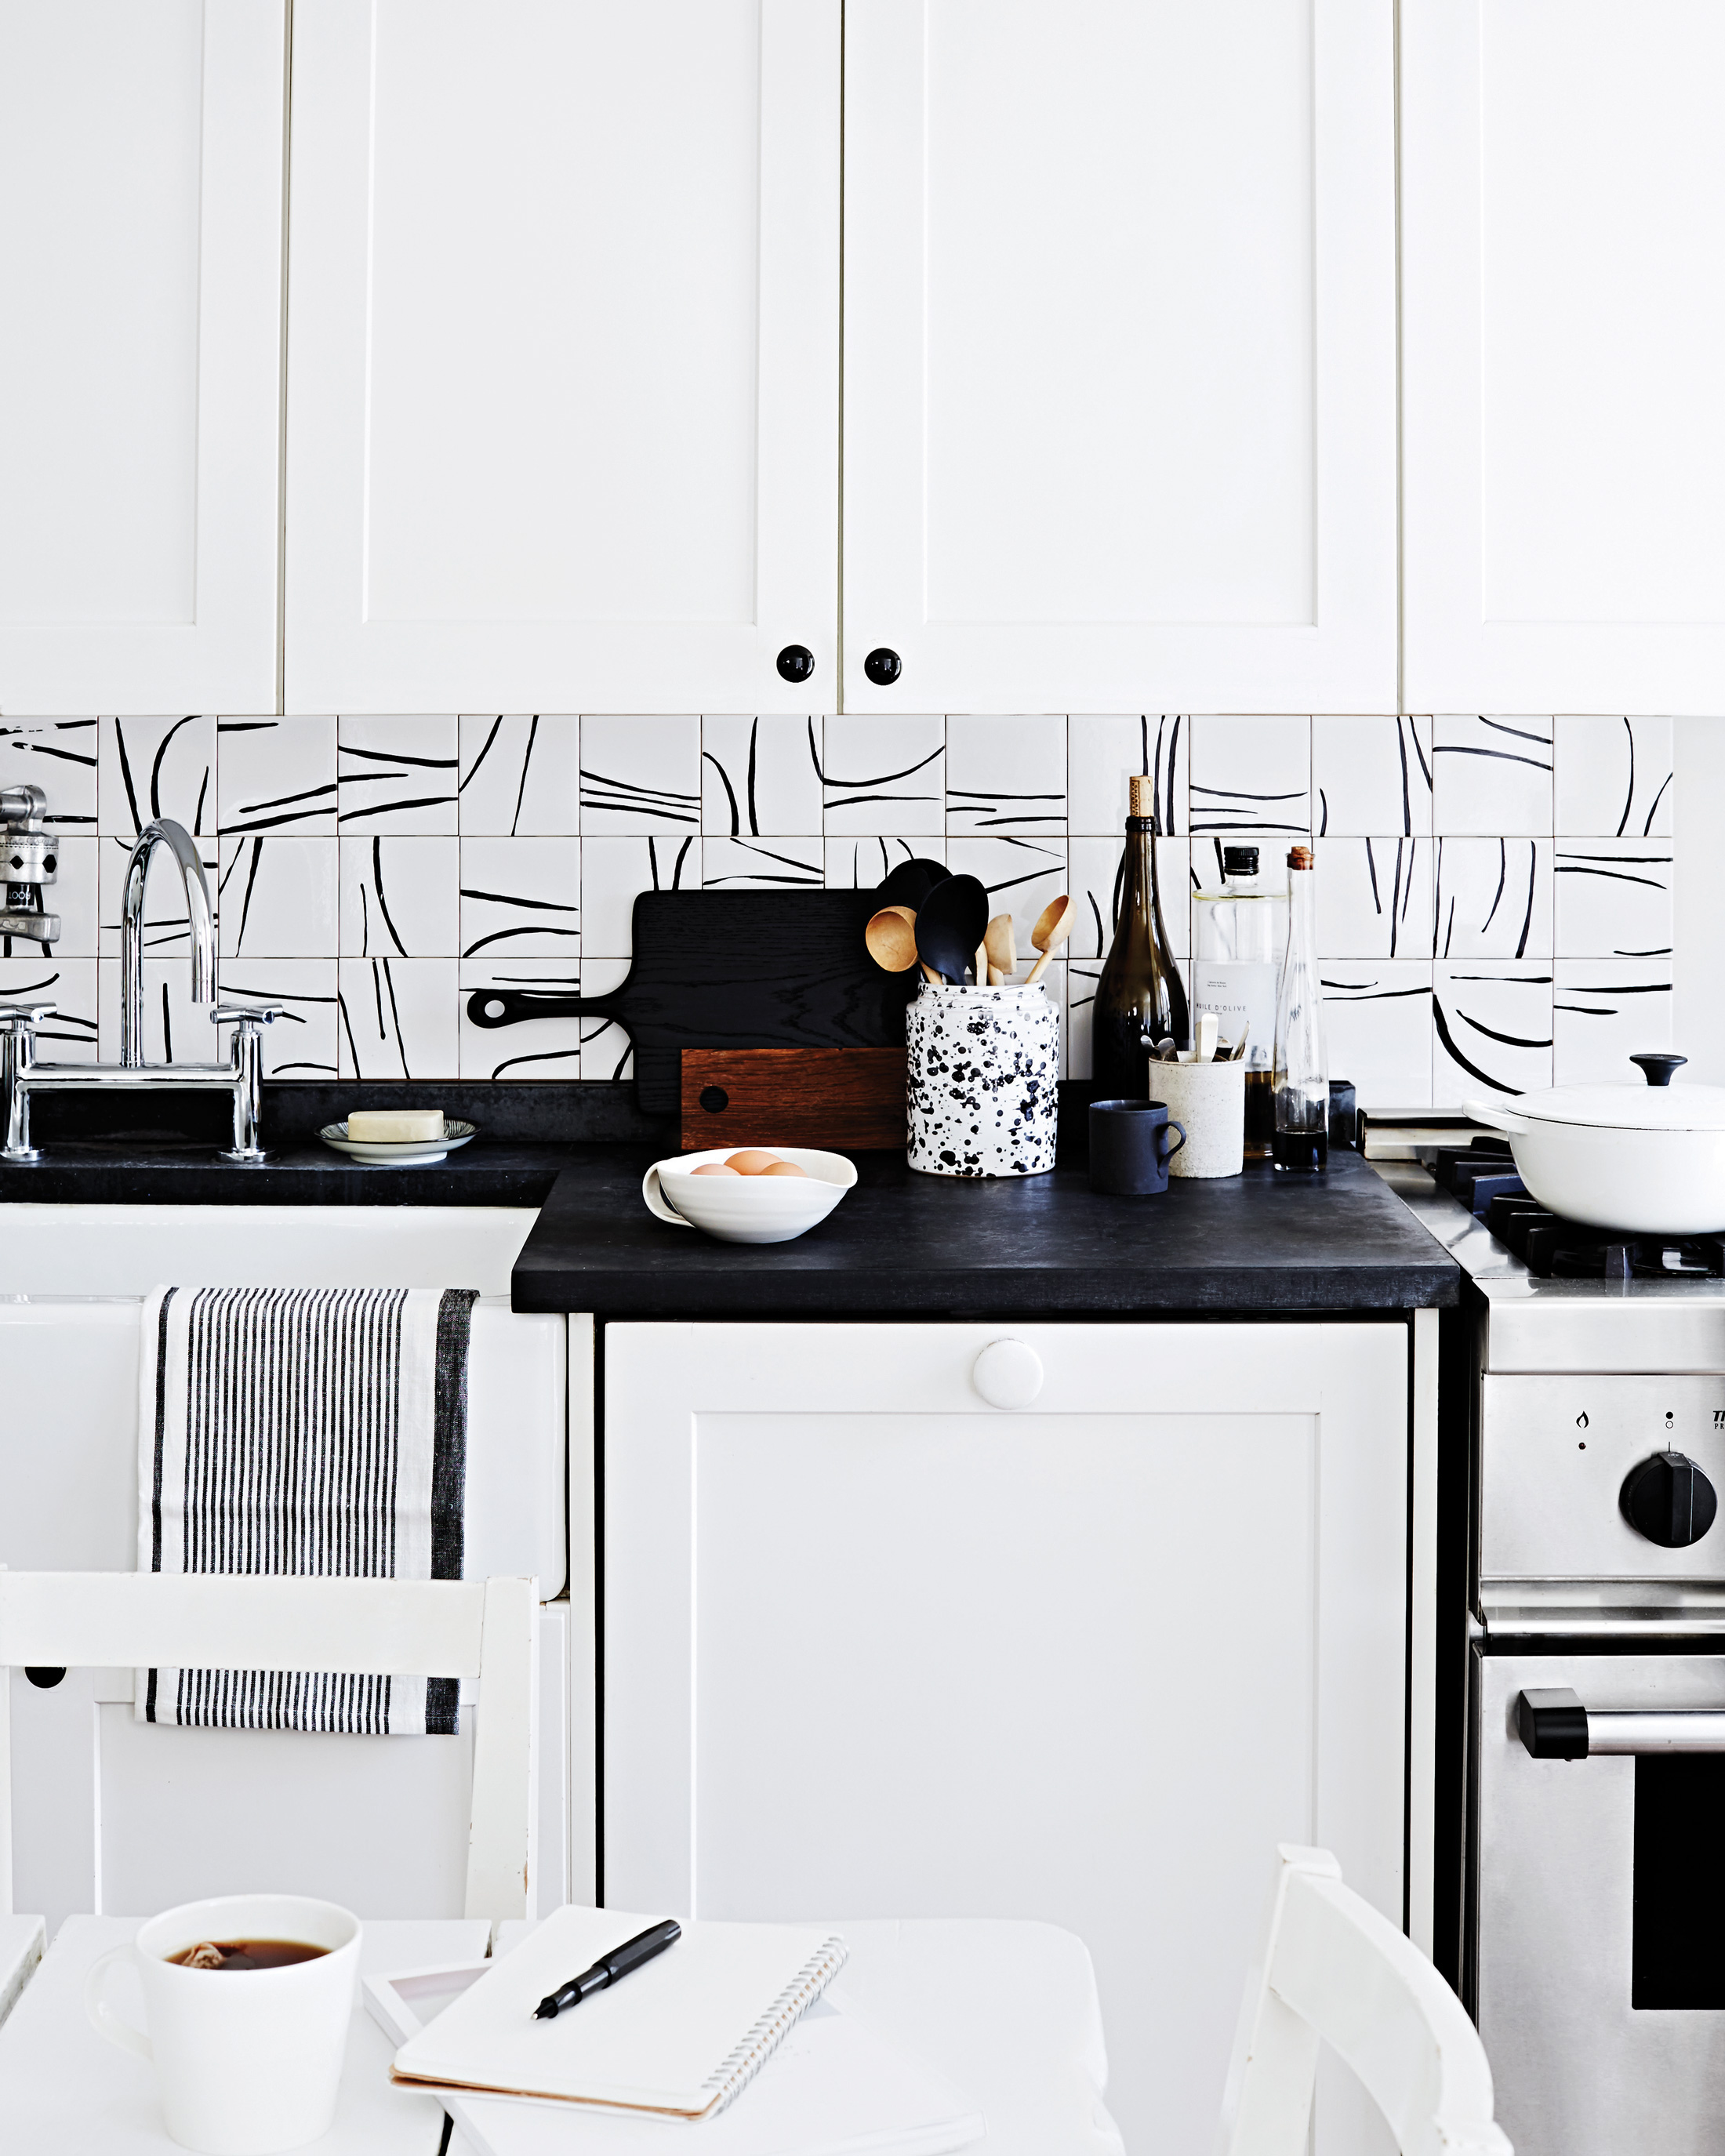 black-white-backsplash-kitchen-9156-d113008.jpg